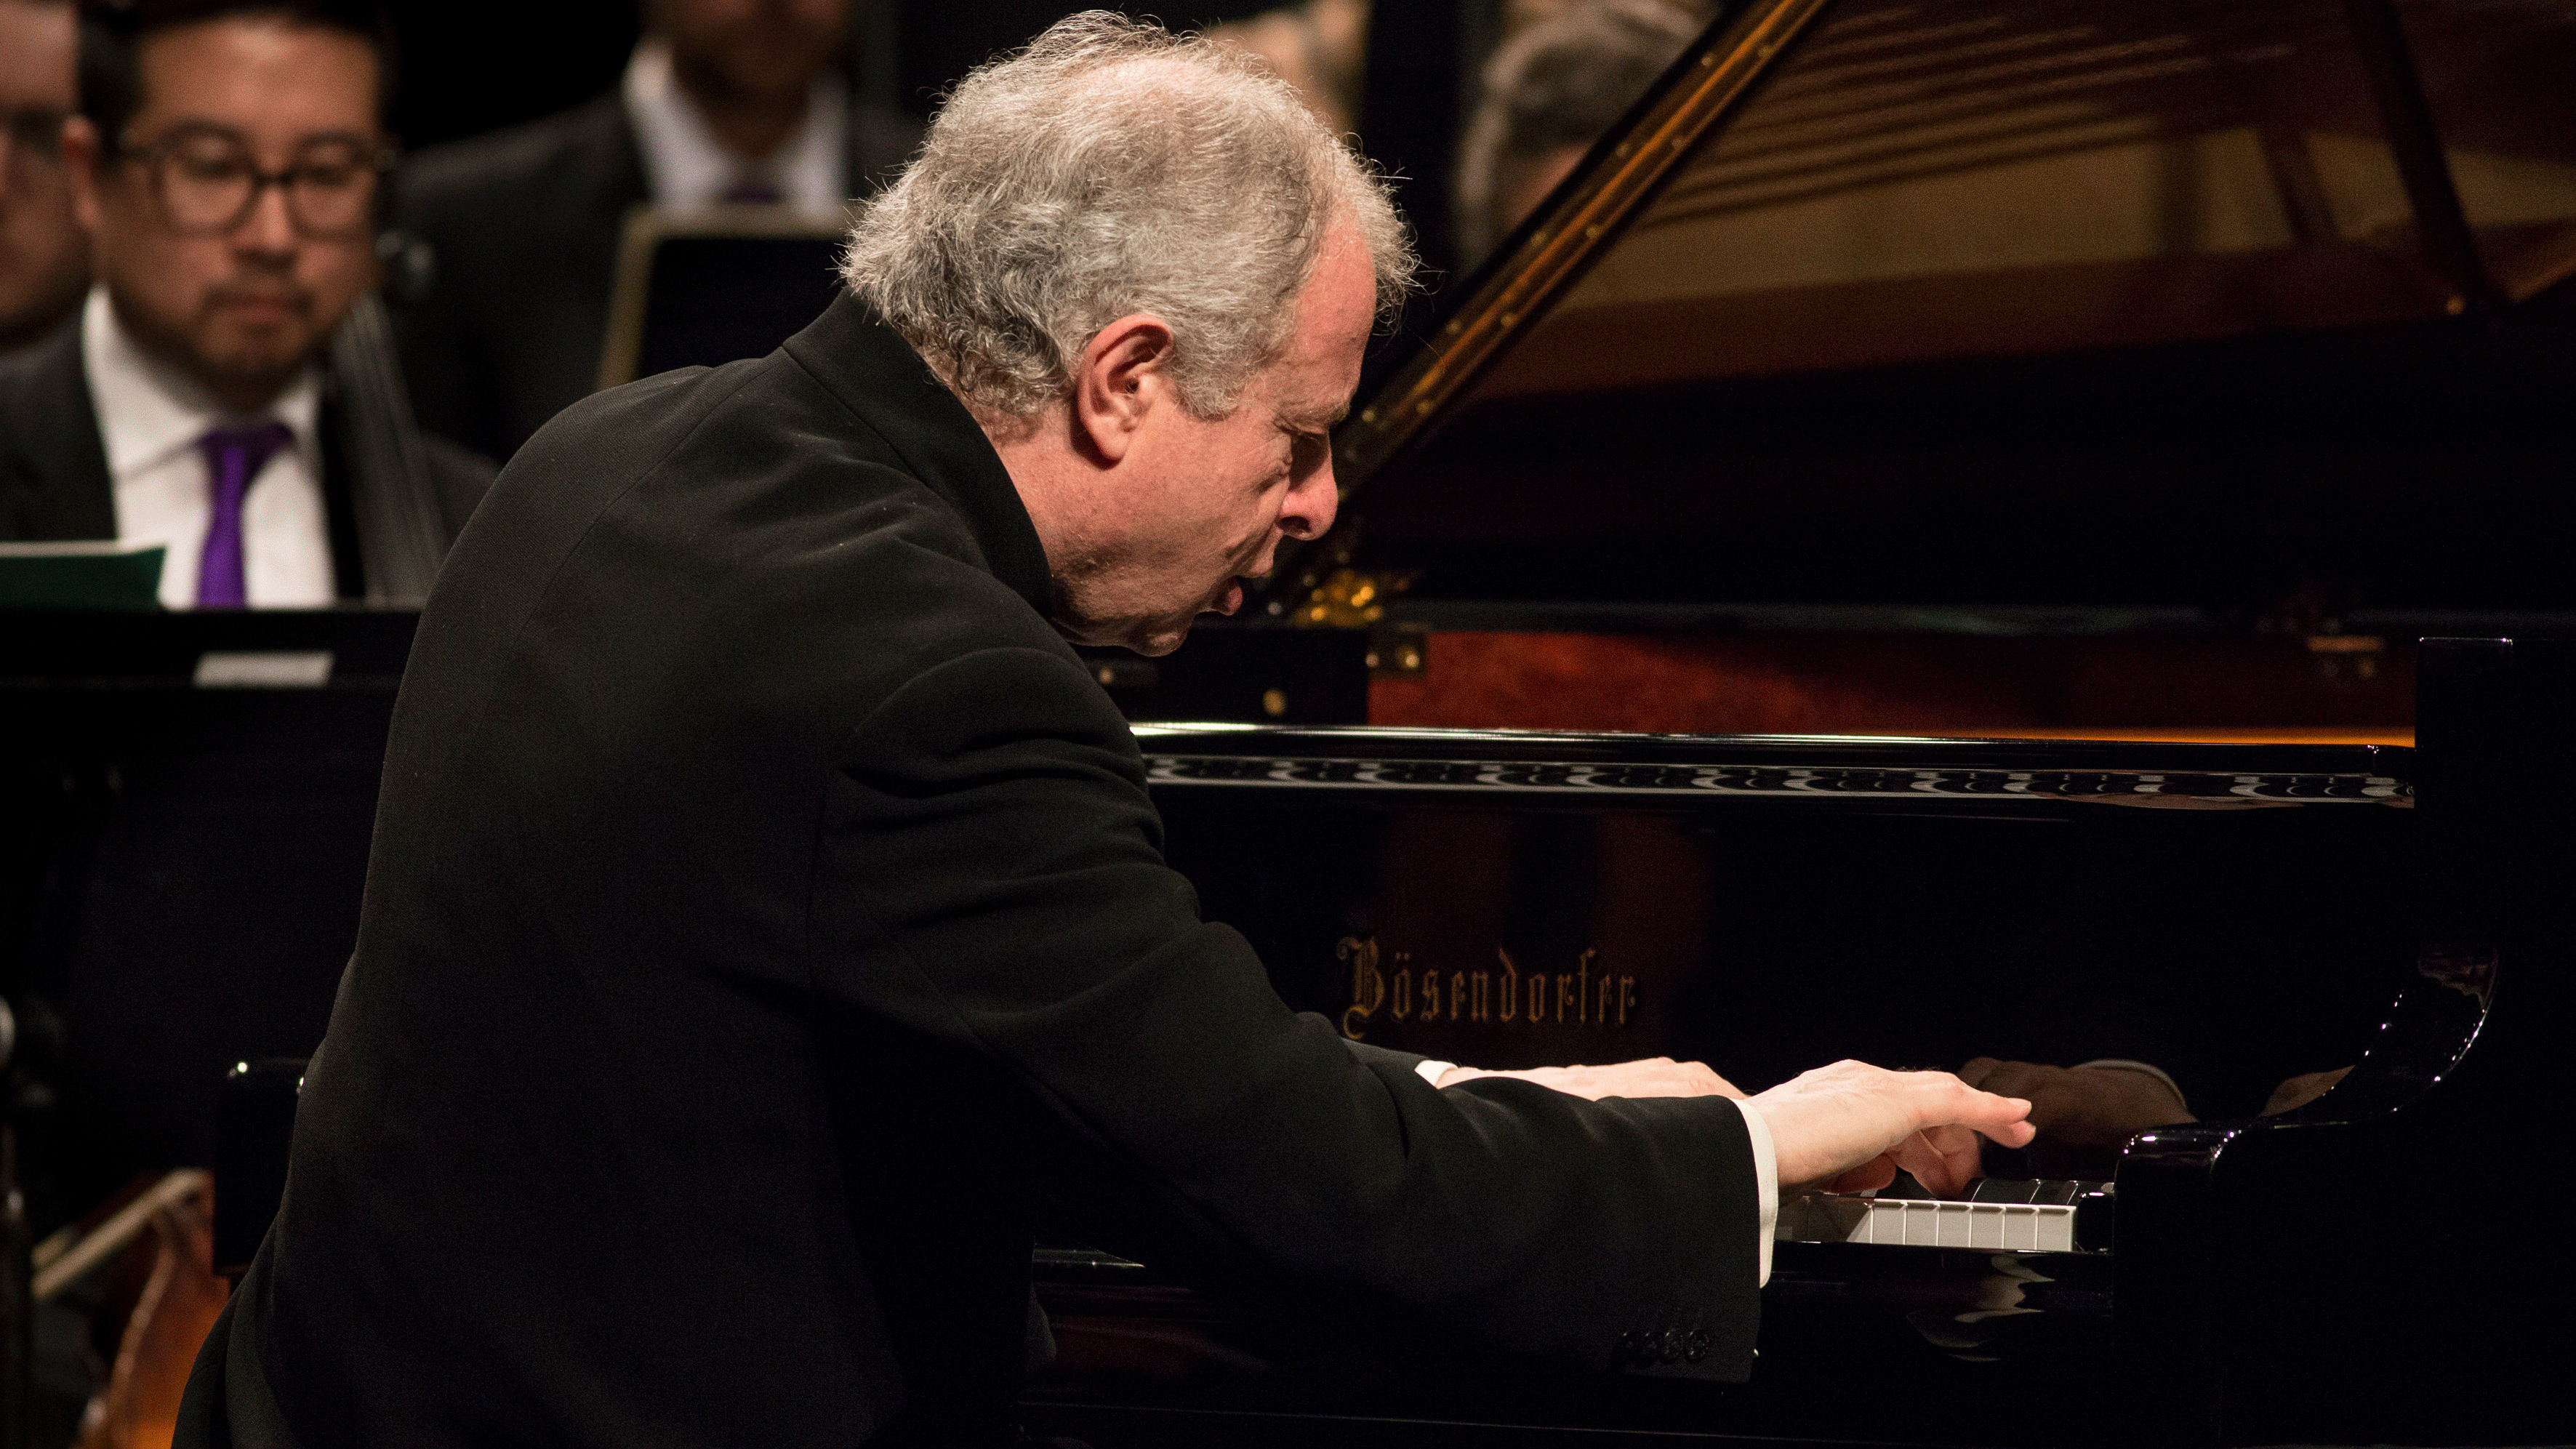 Sir András Schiff conducts and performs Bach, Haydn, and Beethoven